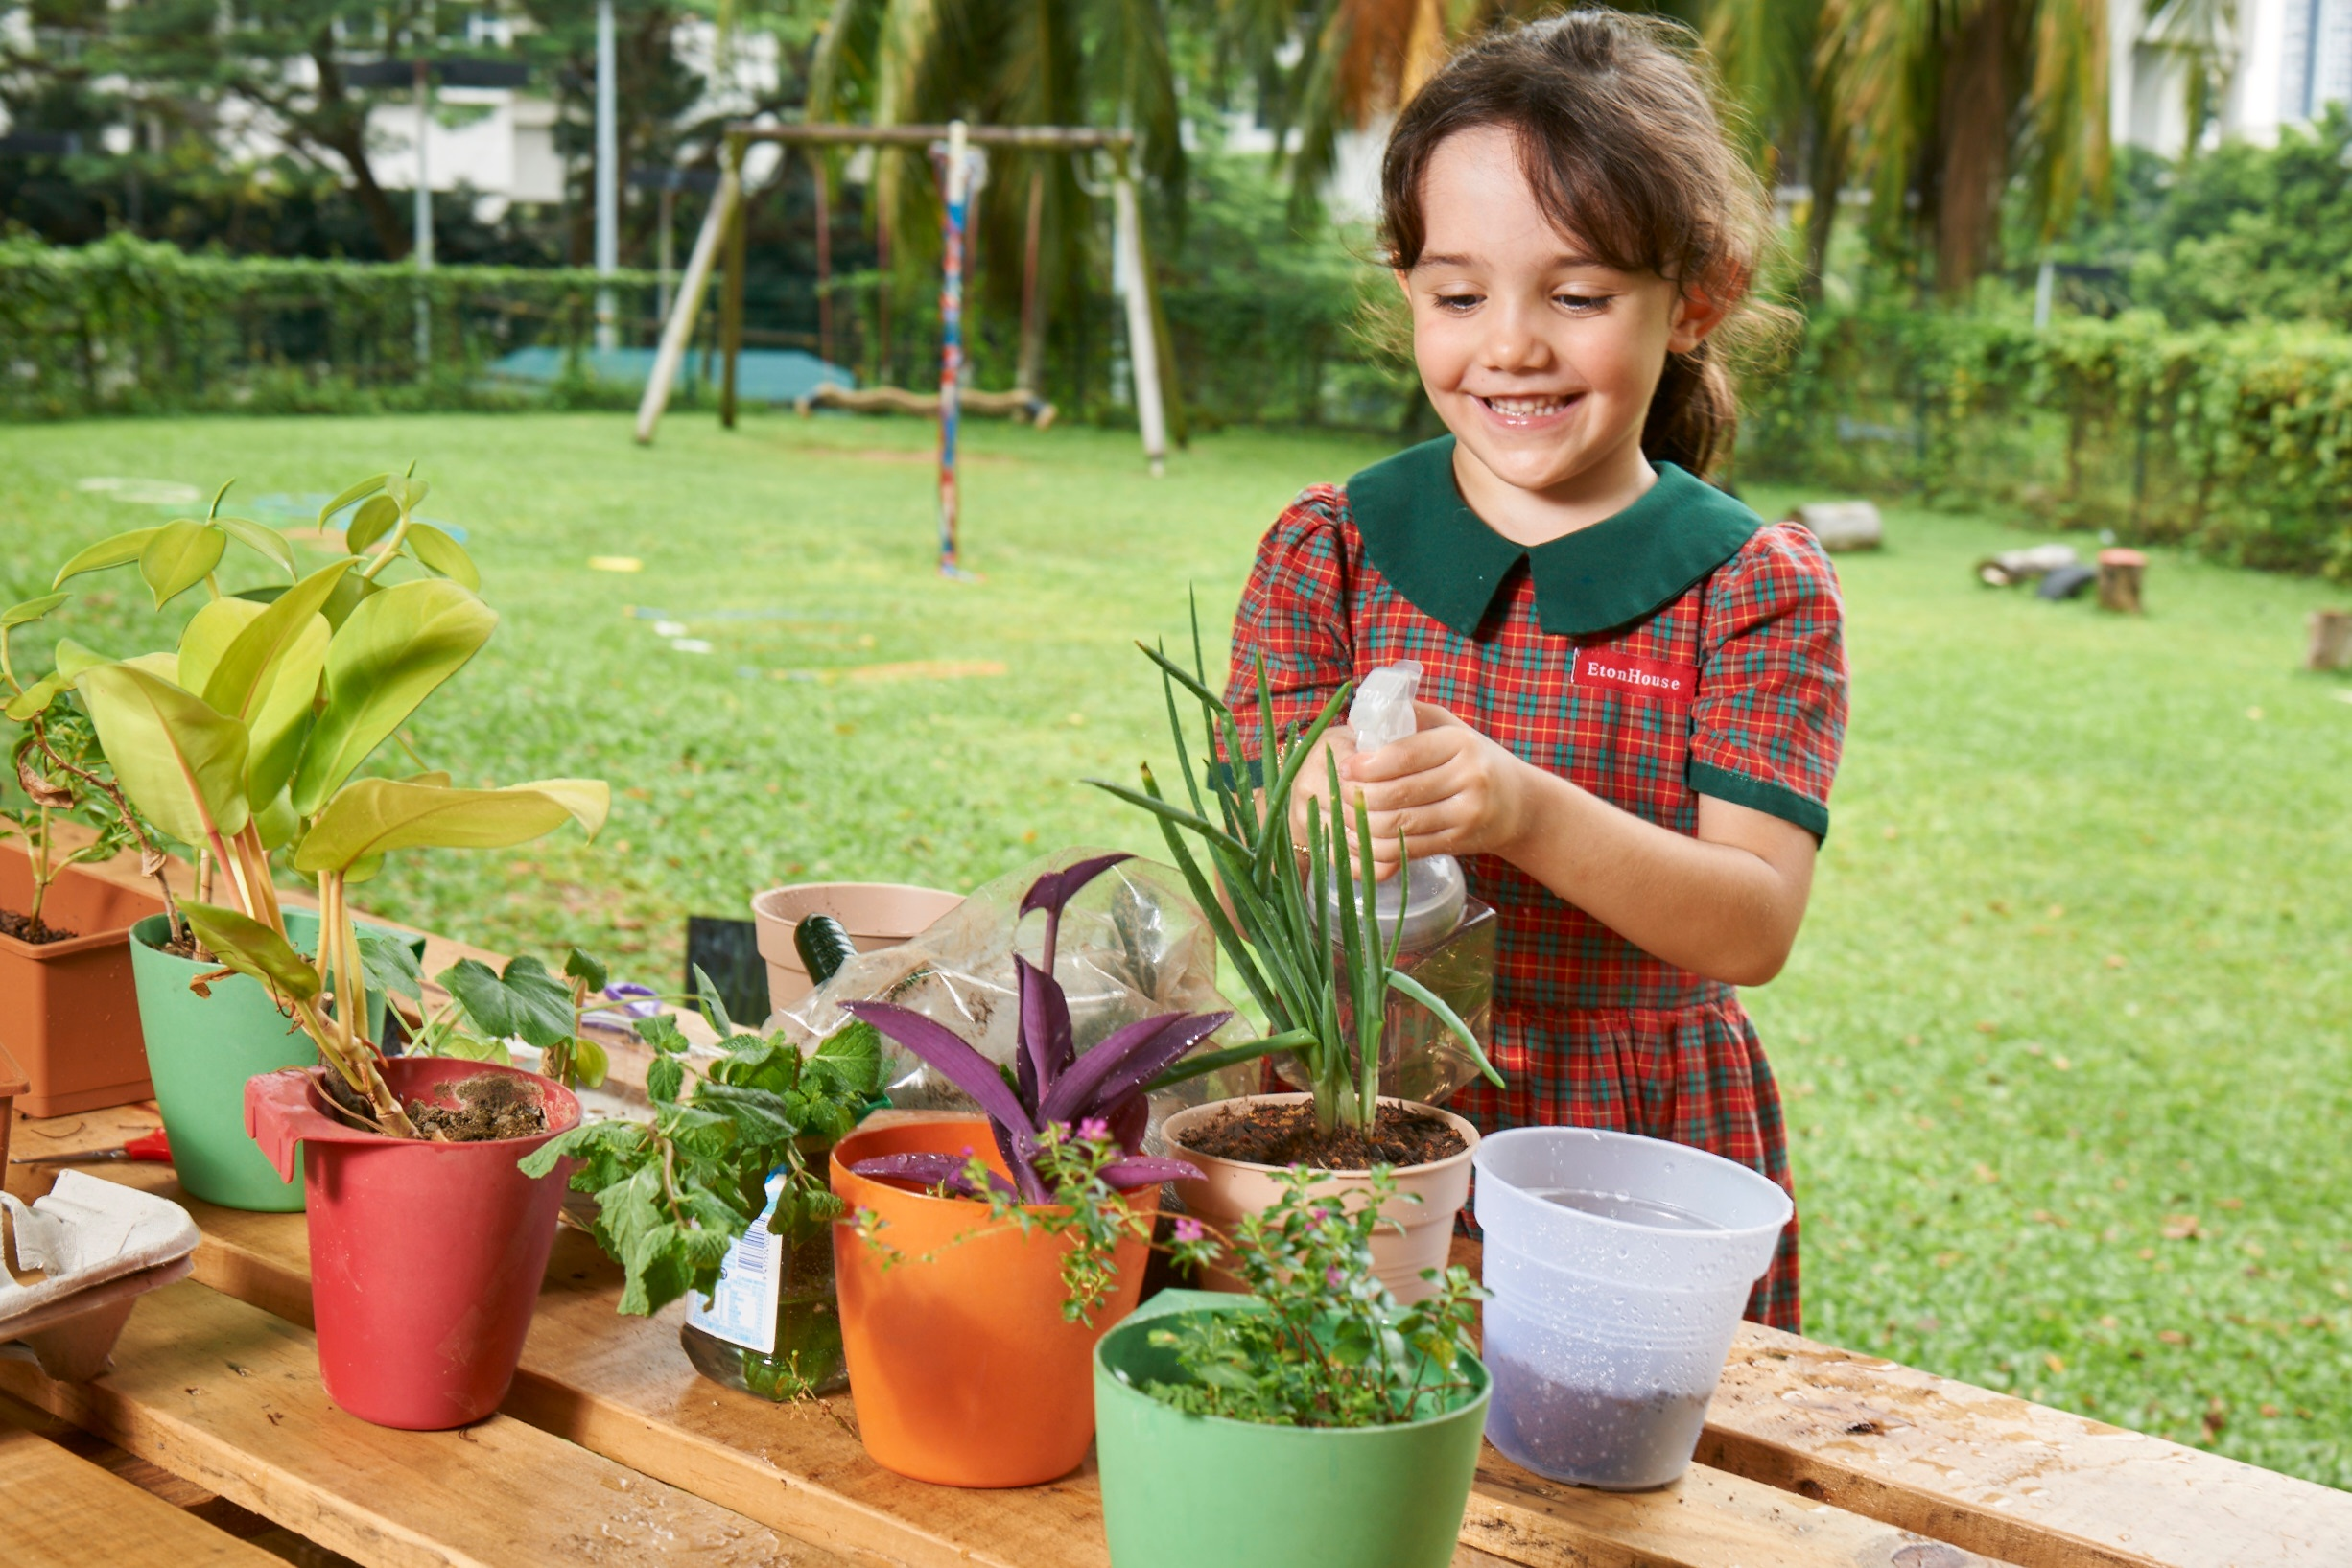 EtonHouse Blog - it is important to move towards natural outdoor learning for children